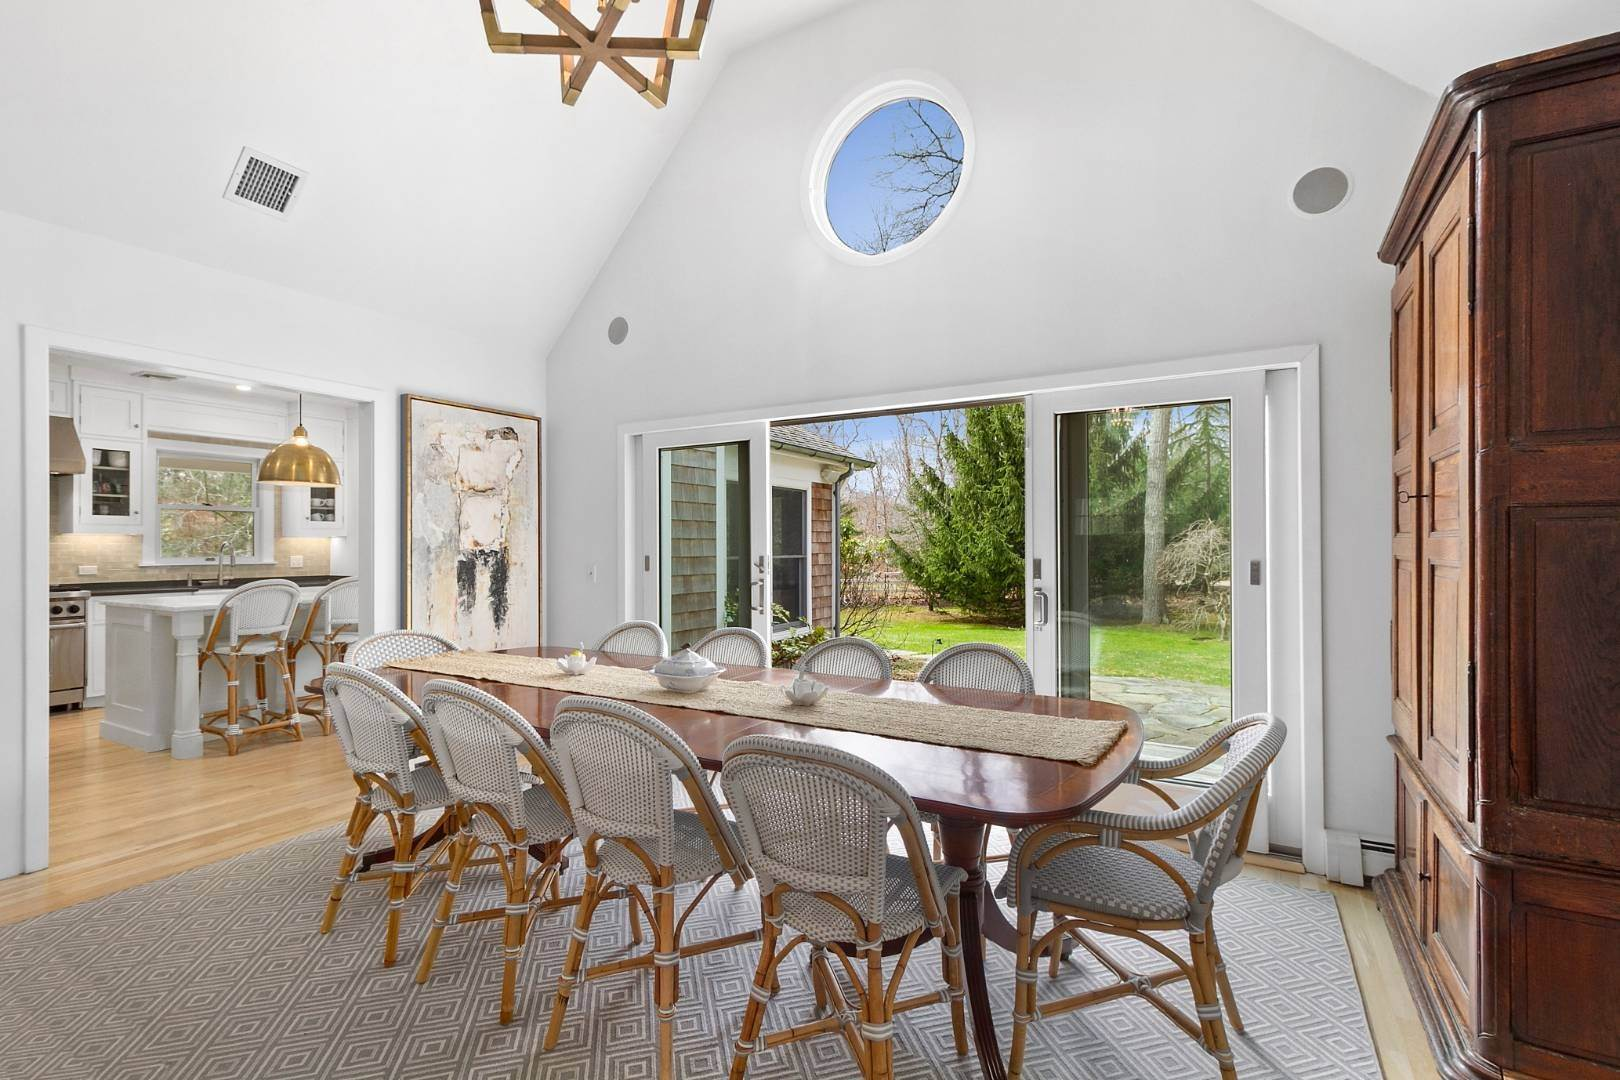 5. Single Family Home for Sale at Historic Springs Two-House Compound 104 Old Stone Hwy, East Hampton, NY 11937